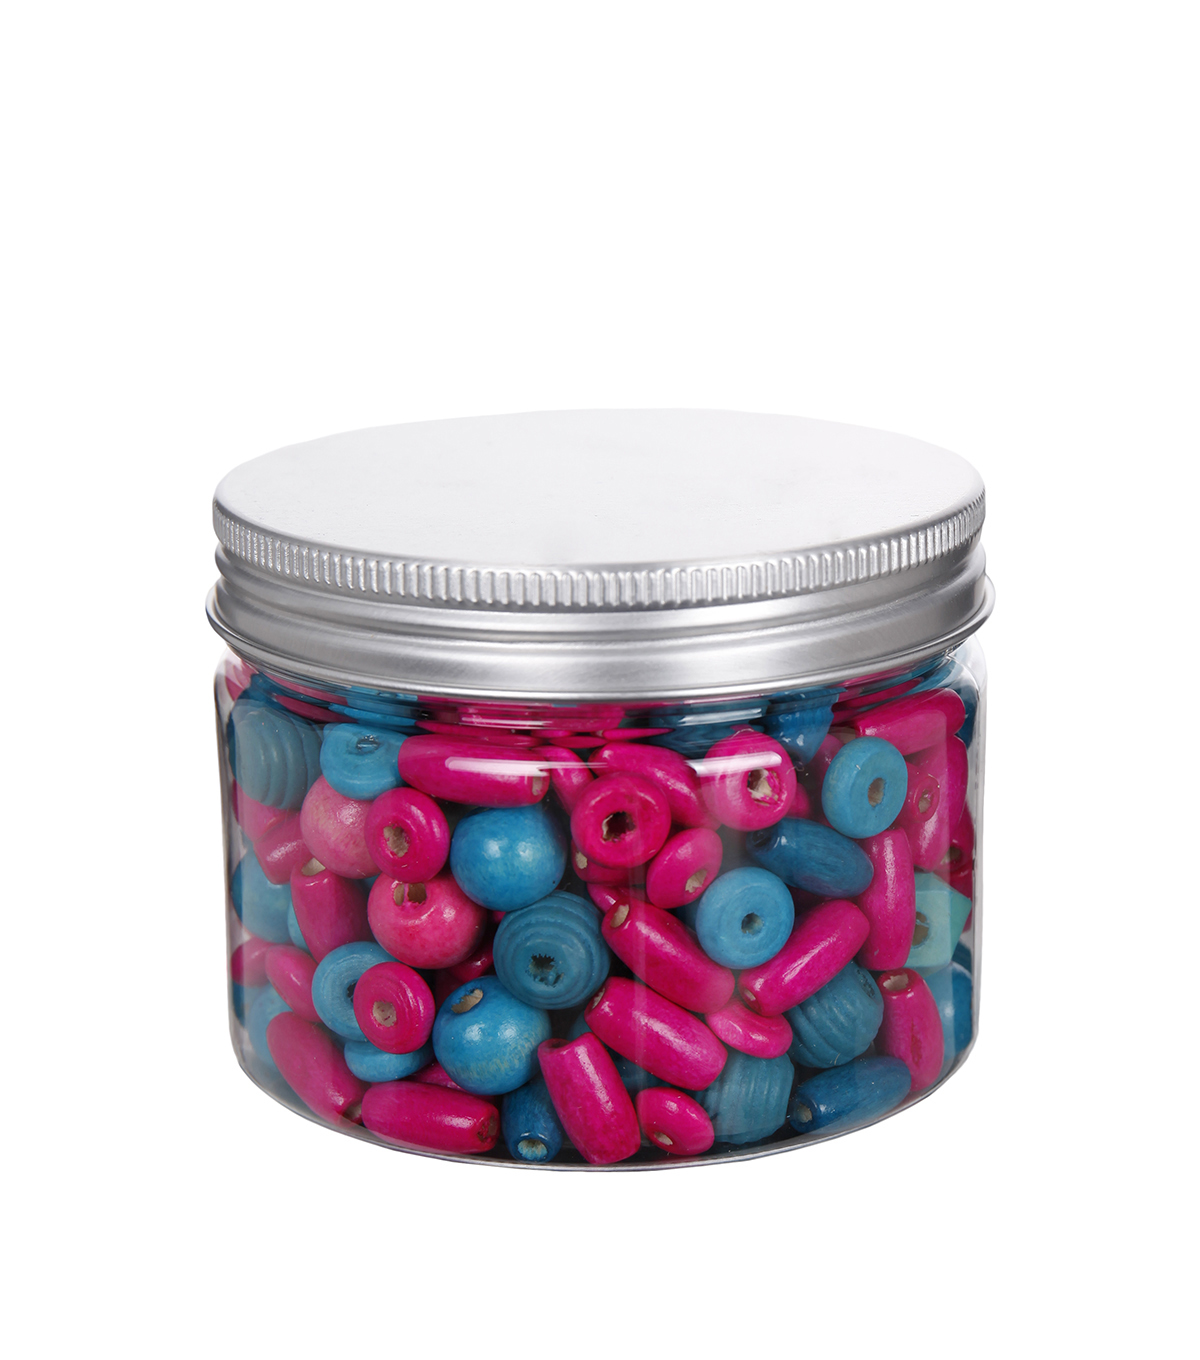 hildie & jo™ Assorted Fashion Beads in Plastic Jar-Blue & Pink